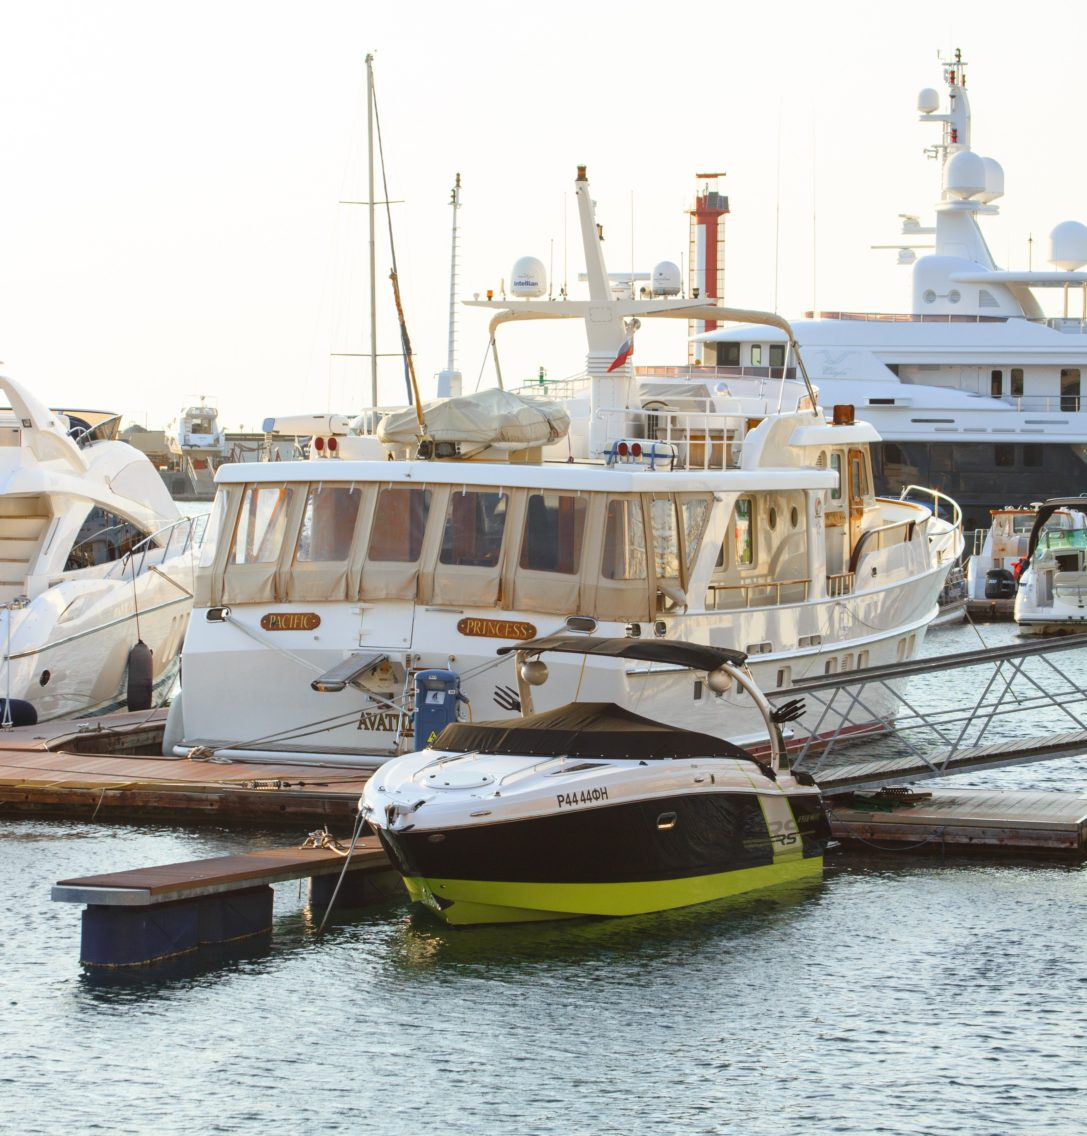 The Booming Boating Industry of 2020